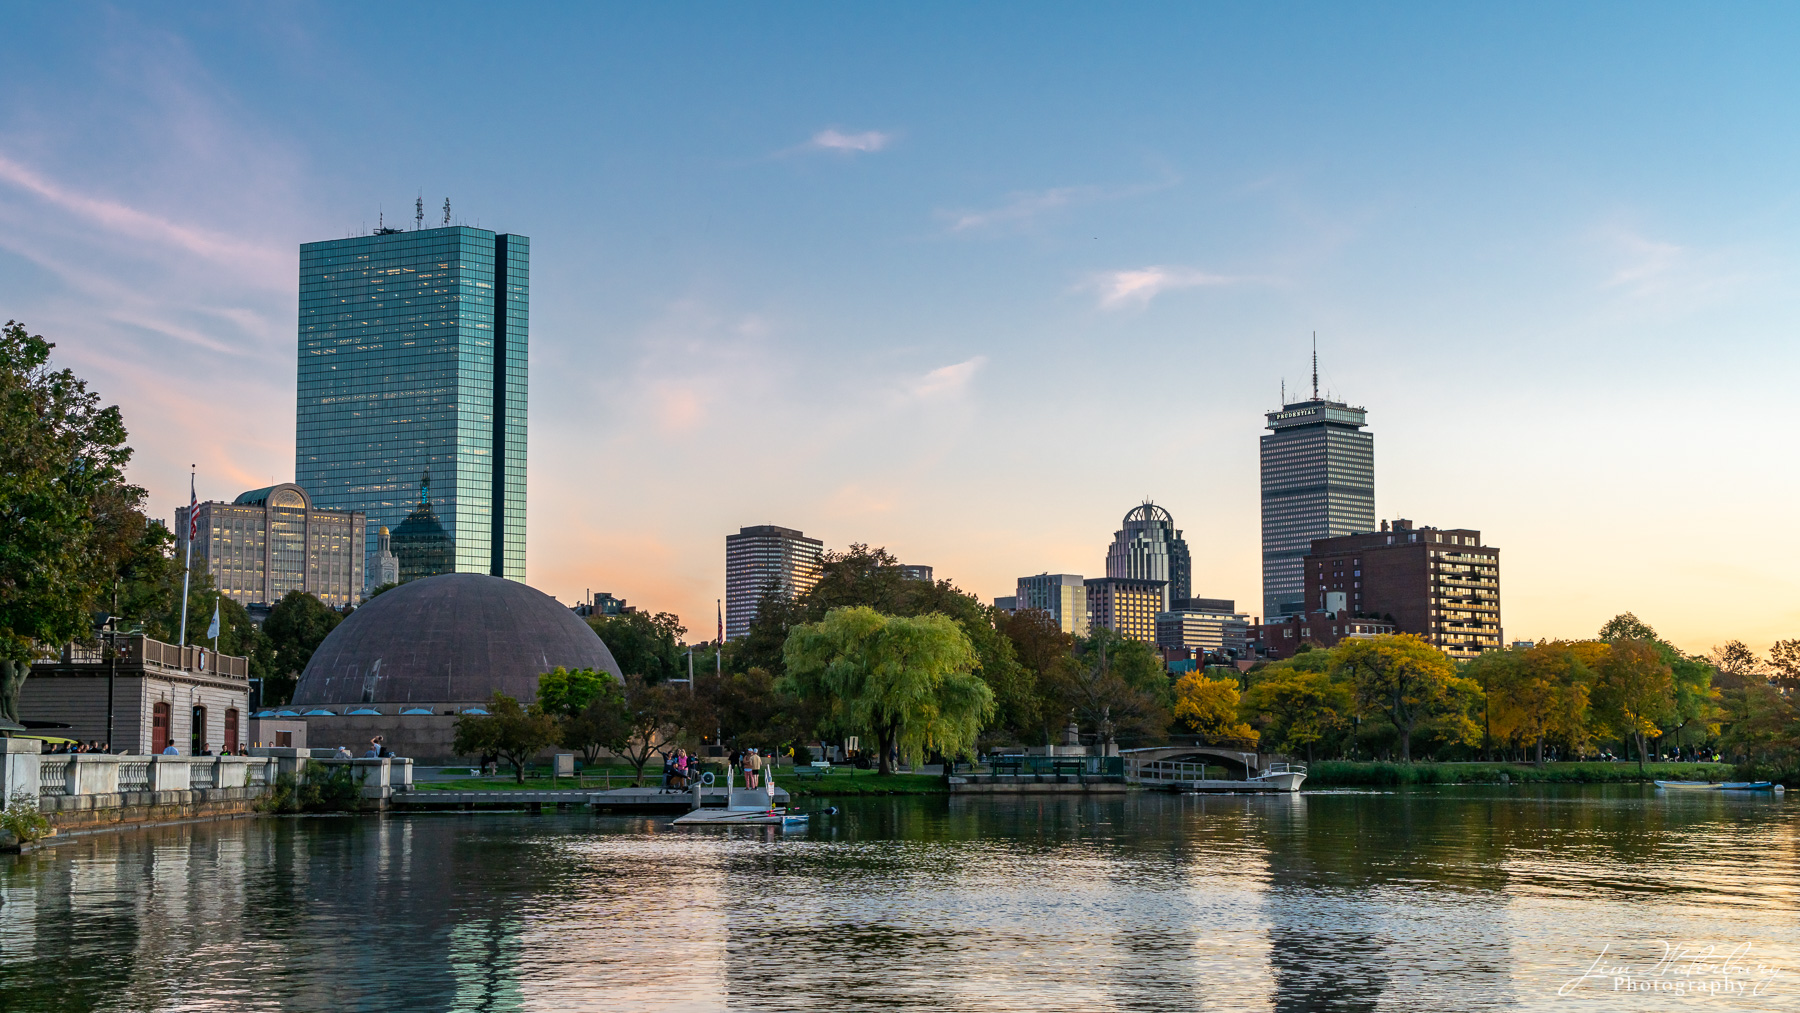 The Prudential Center and downtown Boston from the Charles River, in the evening light of a sunny October day.